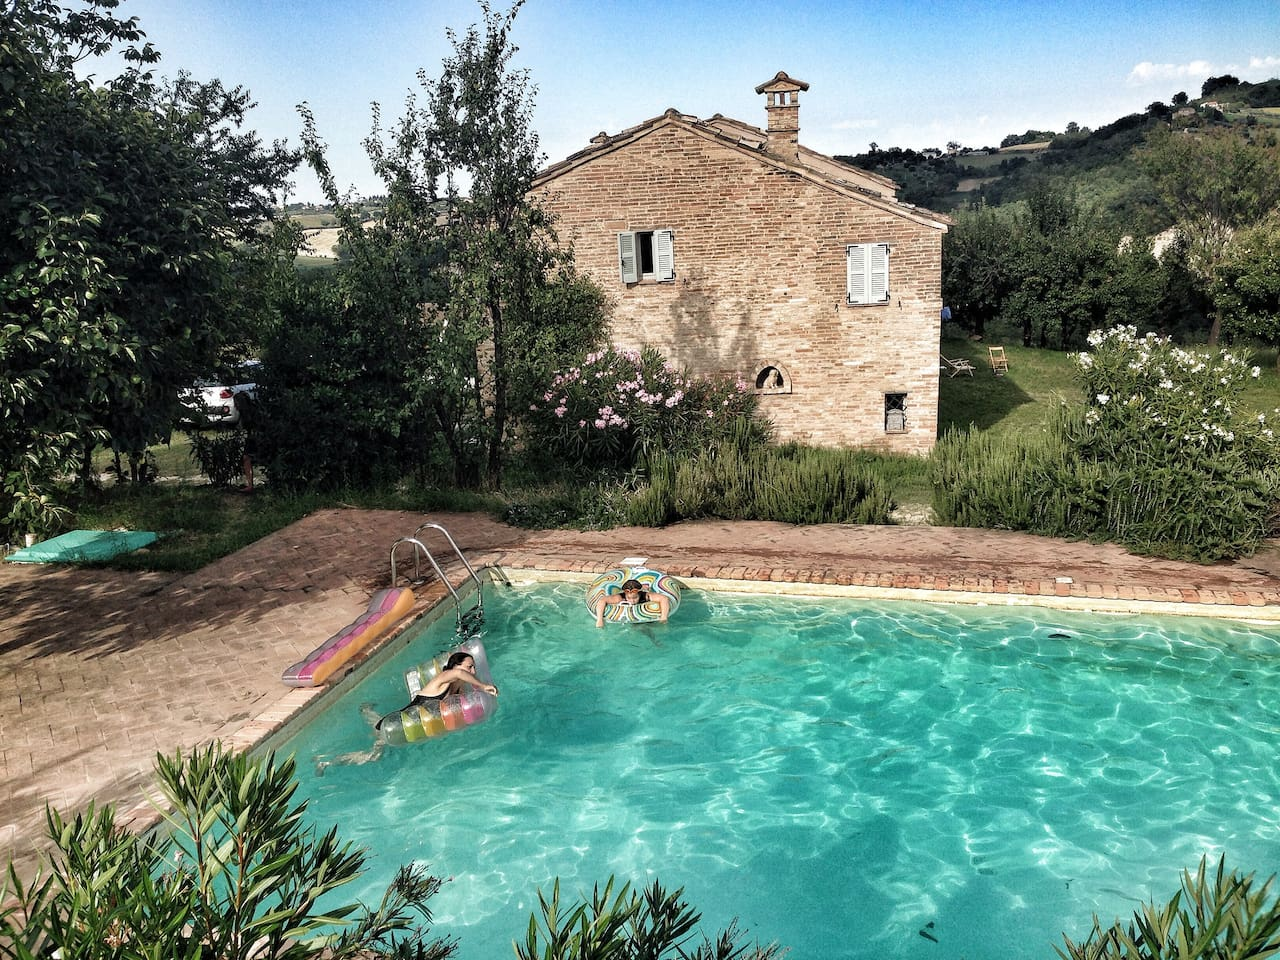 Casa Giulia and pool from the West